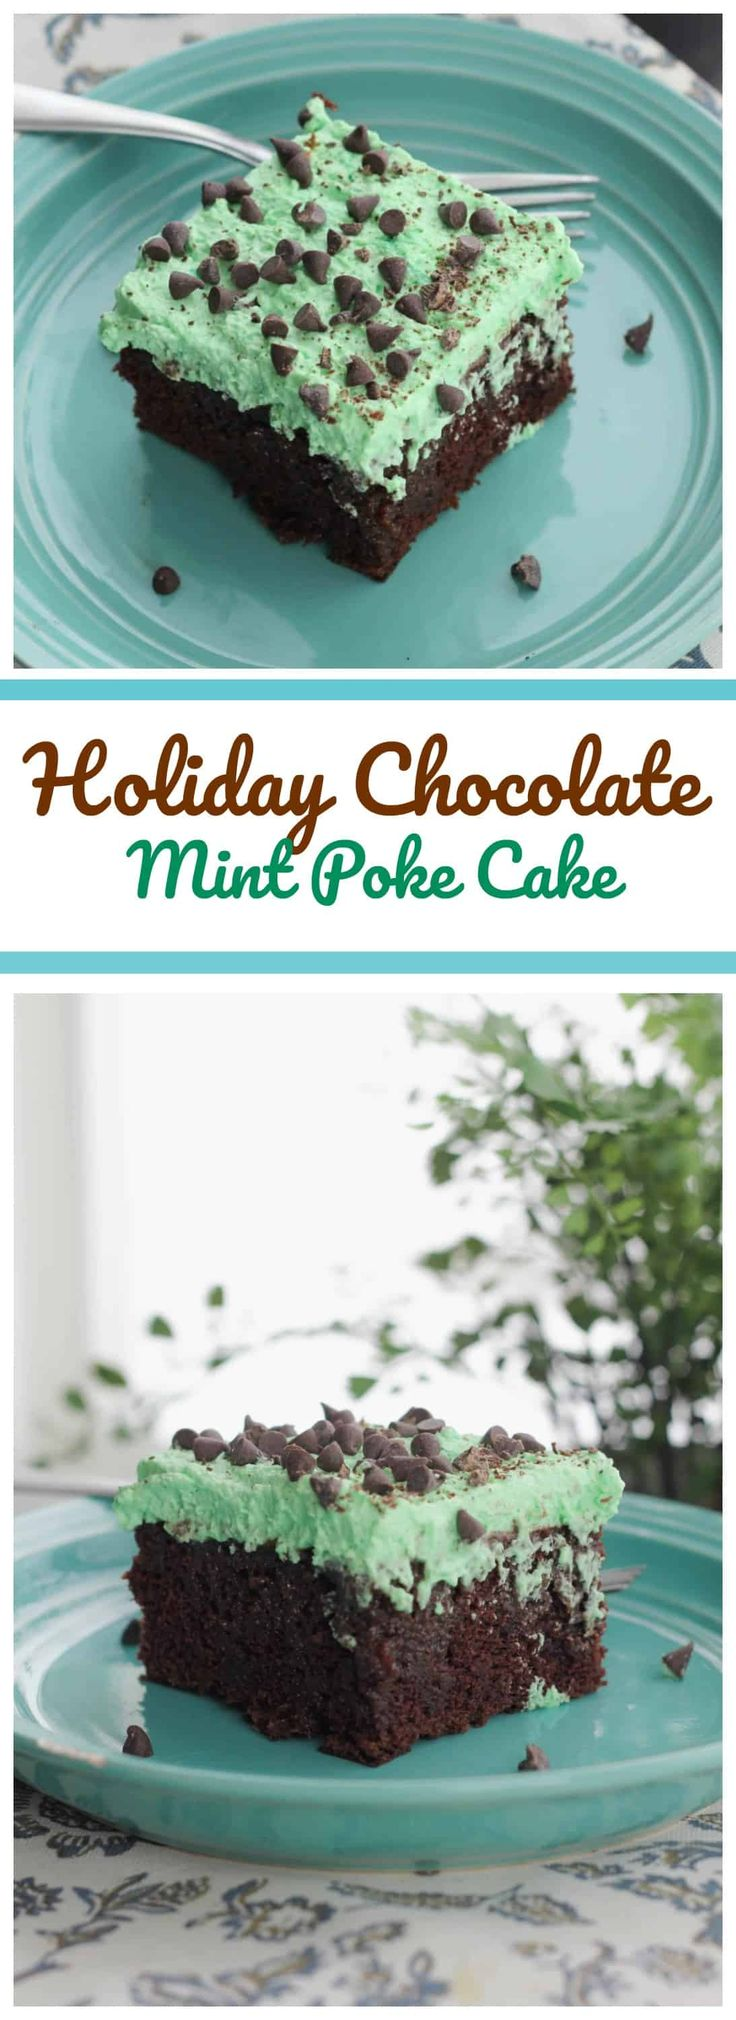 Holiday Chocolate Mint Poke Cake - We absolutely adore this Holiday Chocolate Mint Poke Cake! It's got a fluffy 'phat' layer of mint green whipped topping on top of a luscious chocolate cake drenched with a sweetened condensed Andes Creme de Menthe fudge filling! YUM